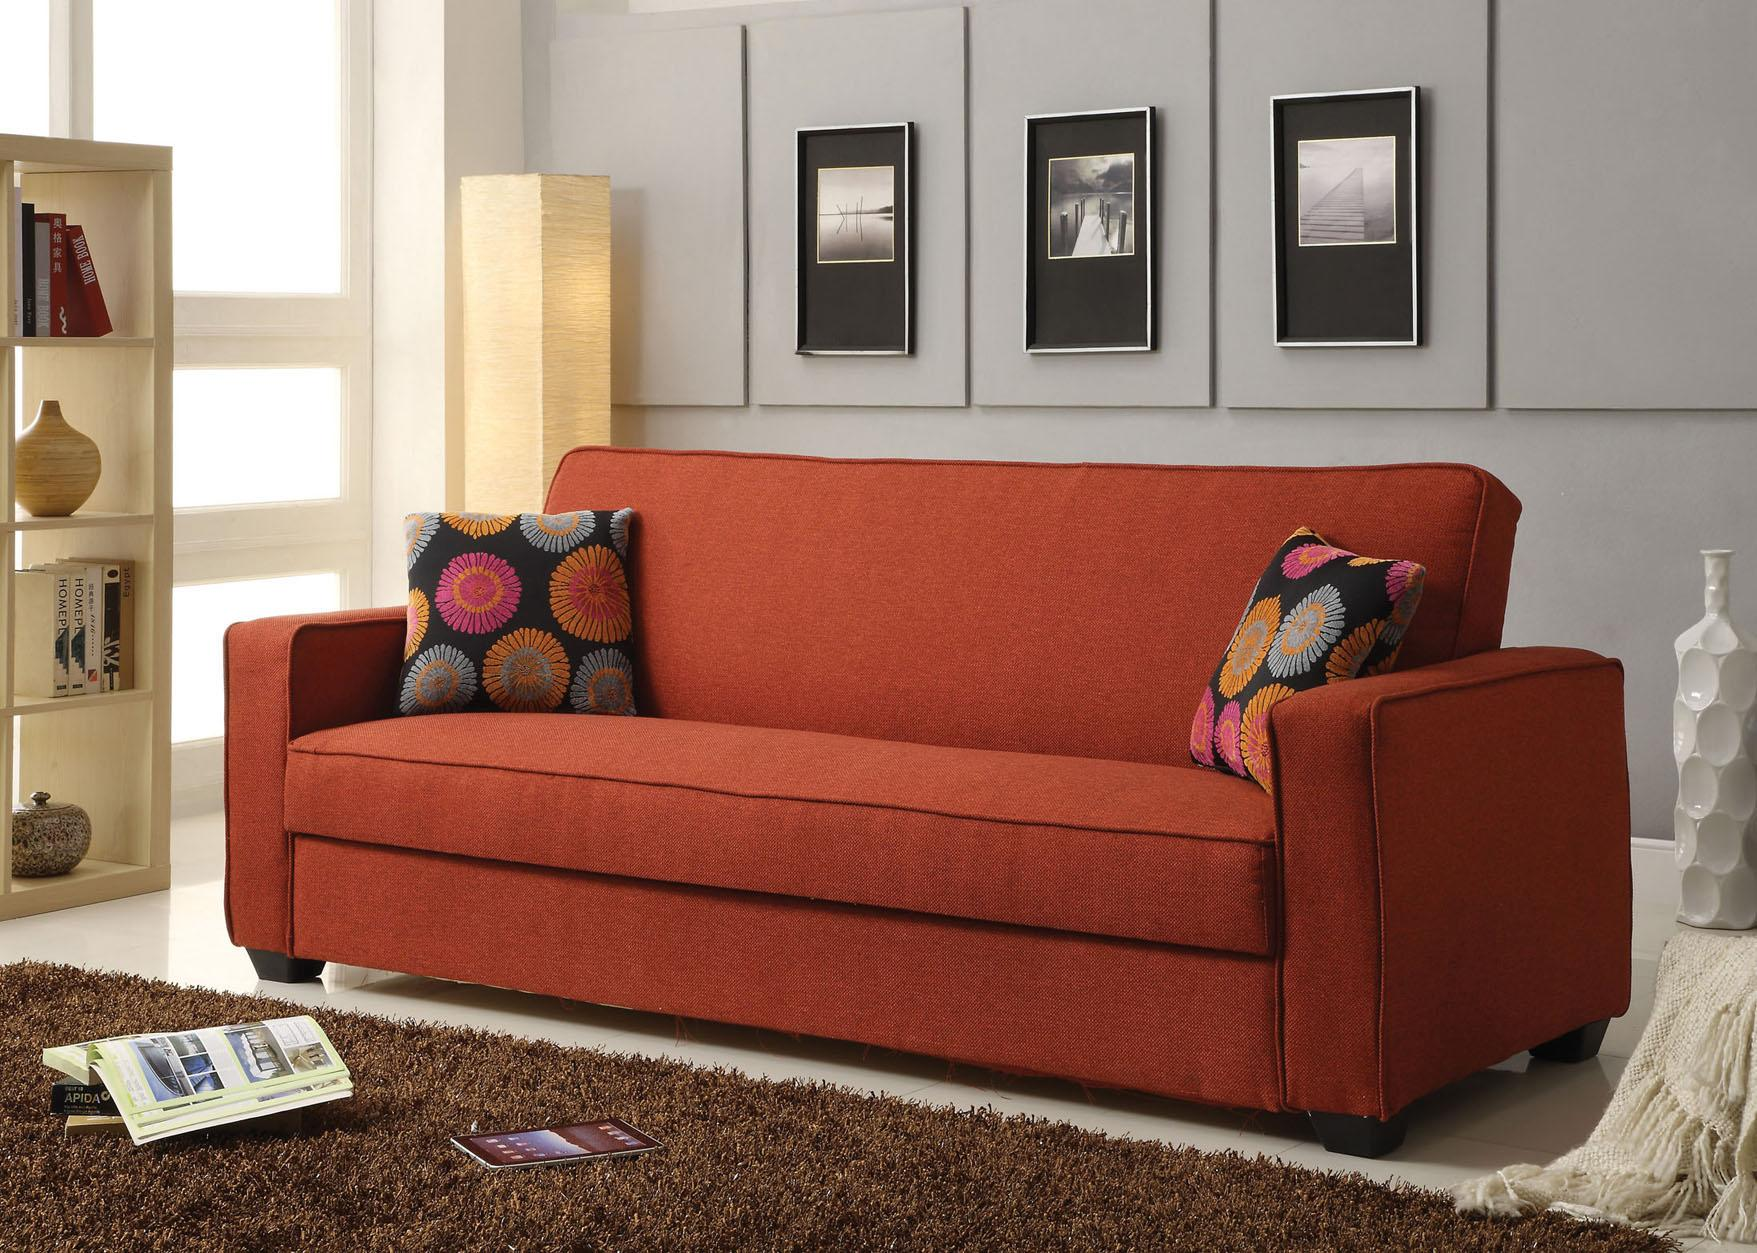 Acme Furniture Shani Linen Adjustable Sofa with Storage - Item Number: 57072